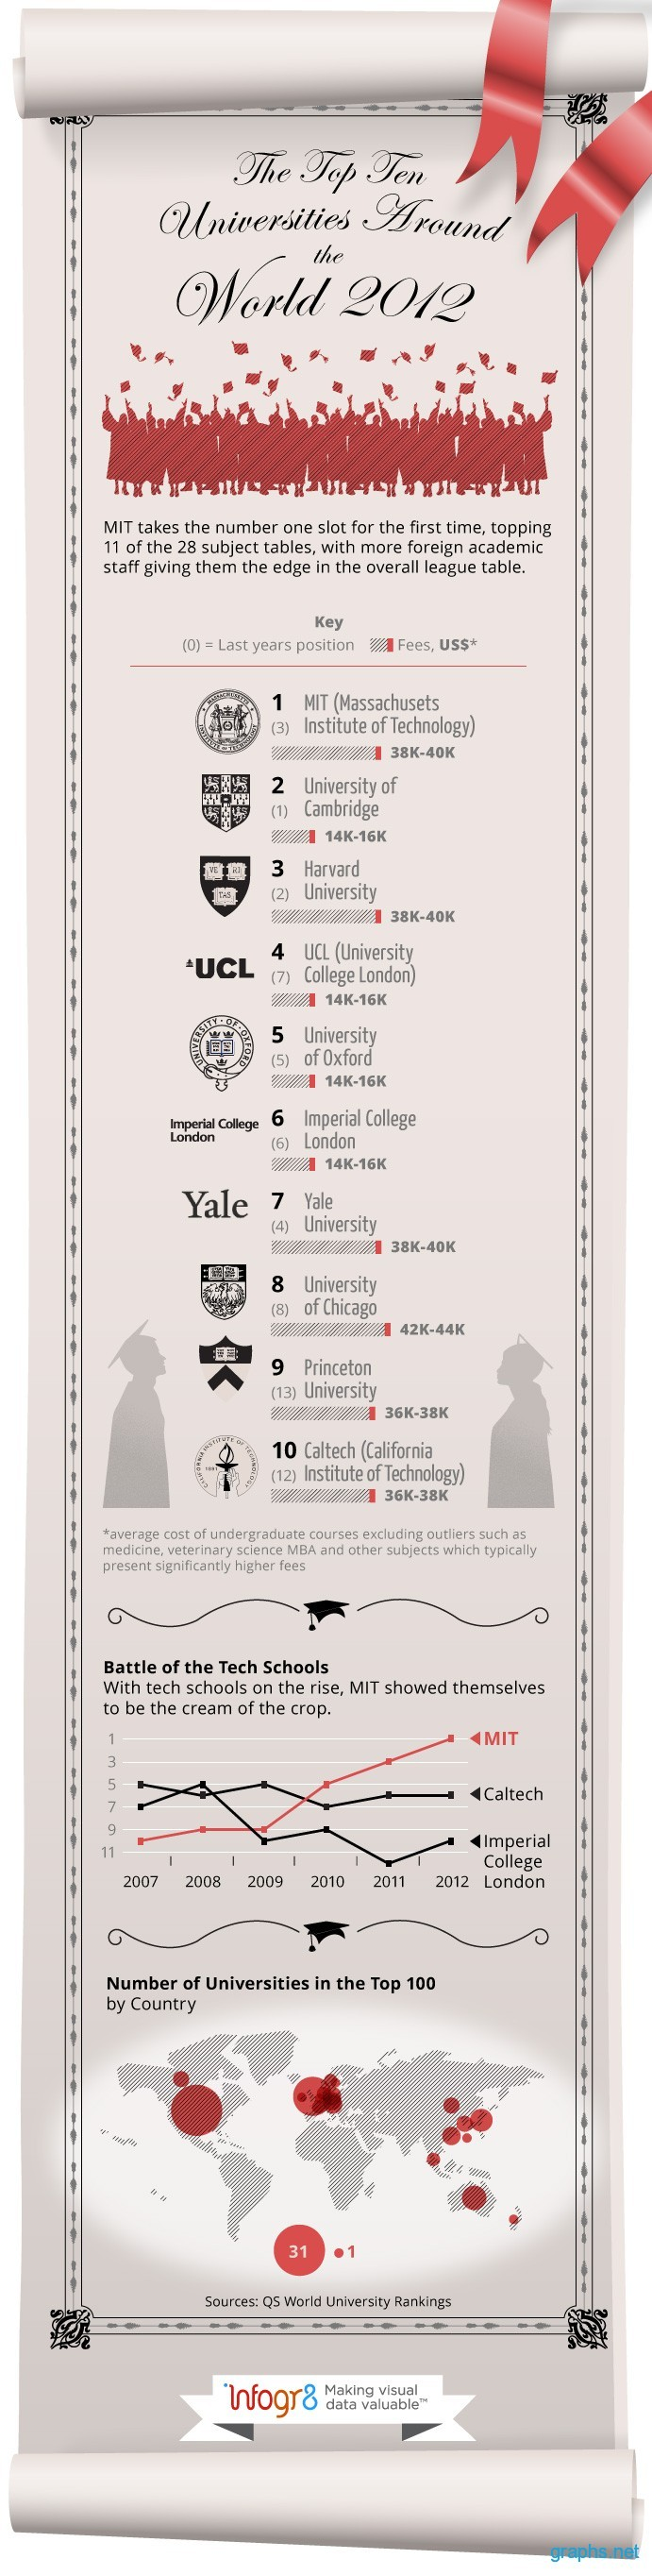 World's Top Universities